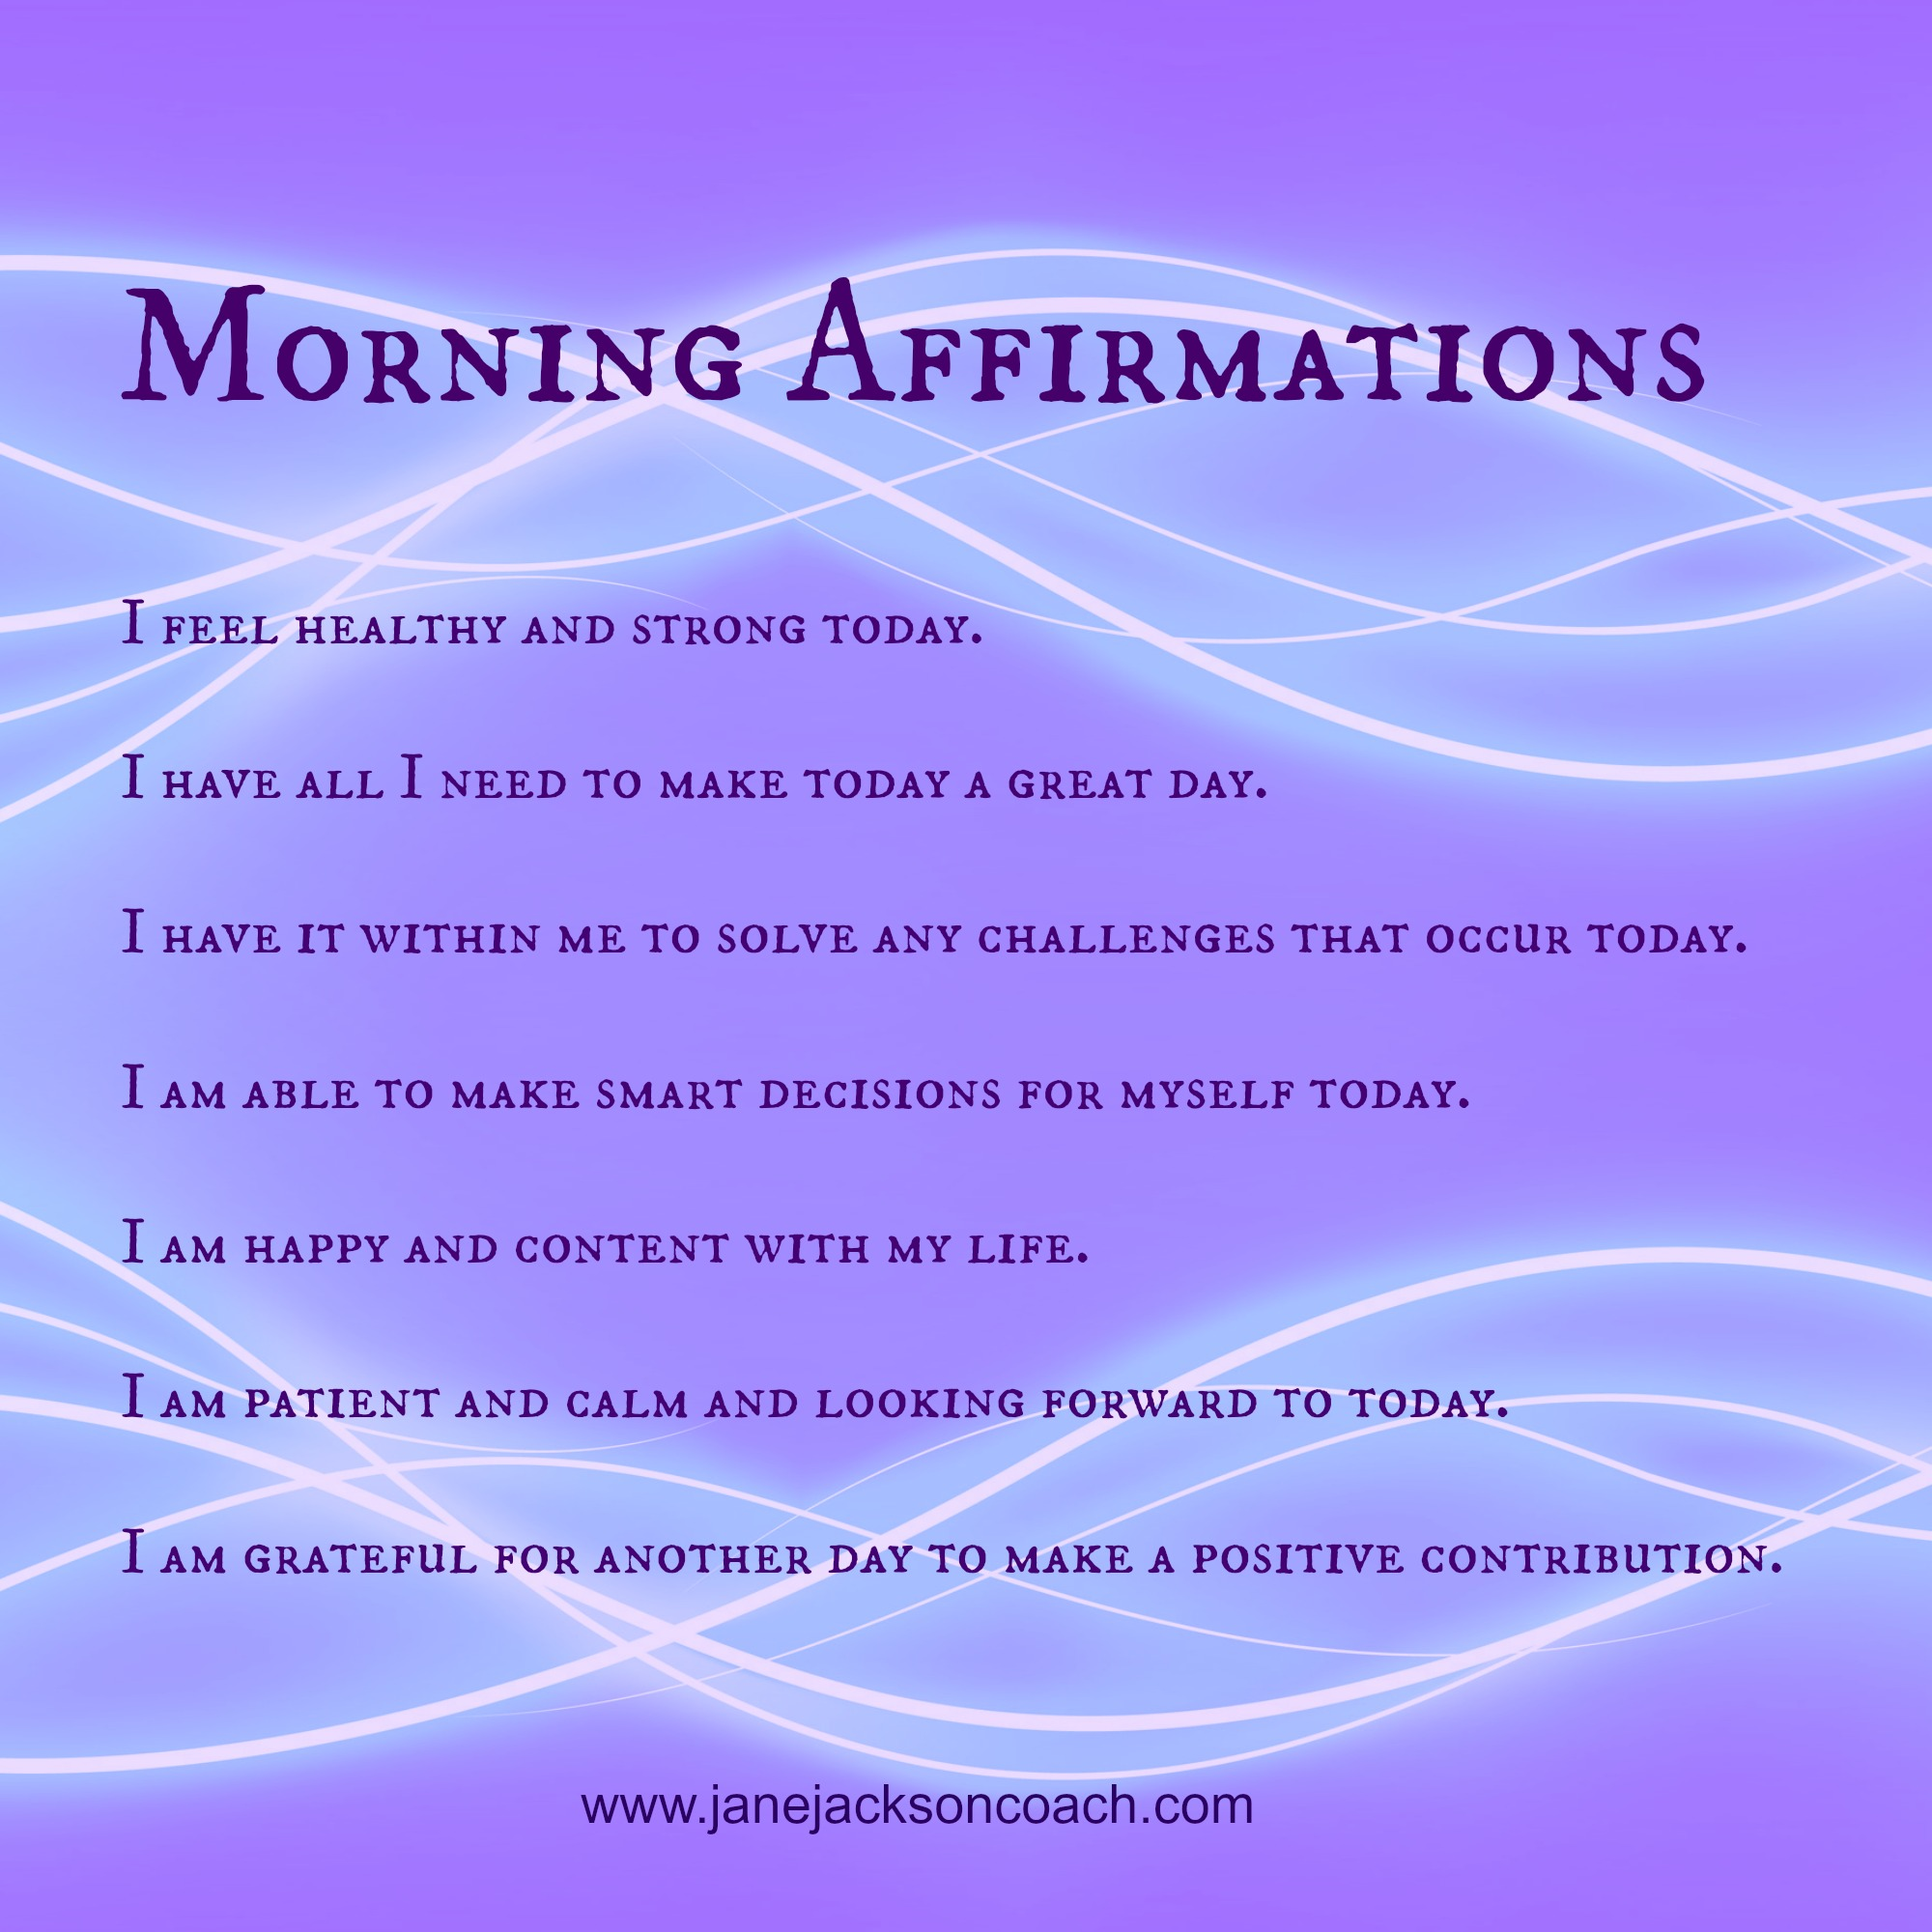 Morning-Affirmations.jpg